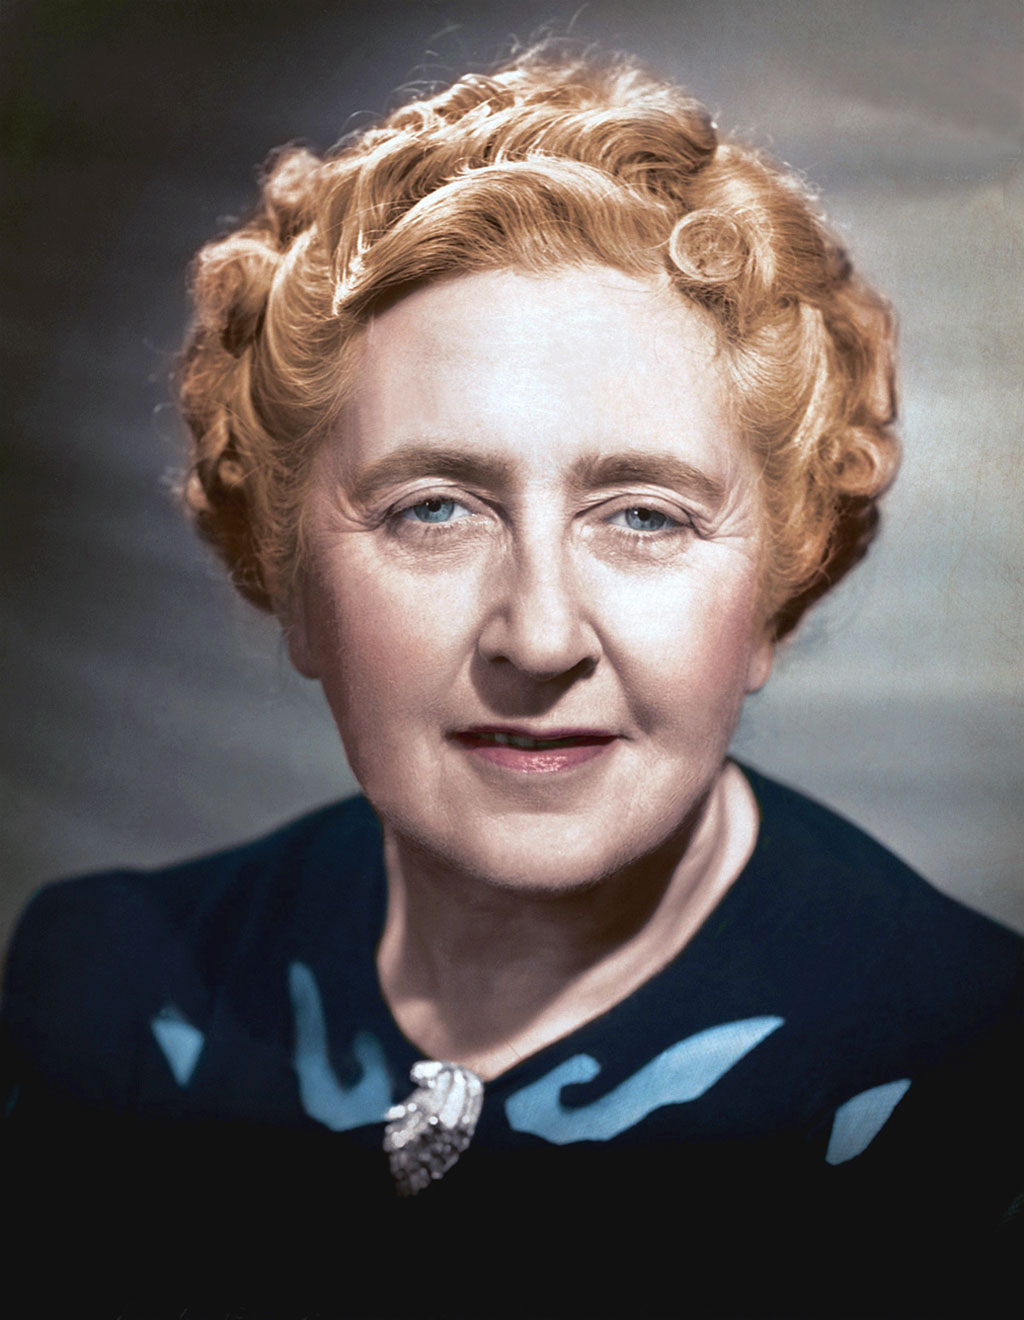 the life and works of agatha christie Les petits meurtres d'agatha christie (tv series) (creator - 12 episodes, 2014 - 2017) (inspired by the works of - 1 episode, 2017) (novel: third girl - 1 episode.